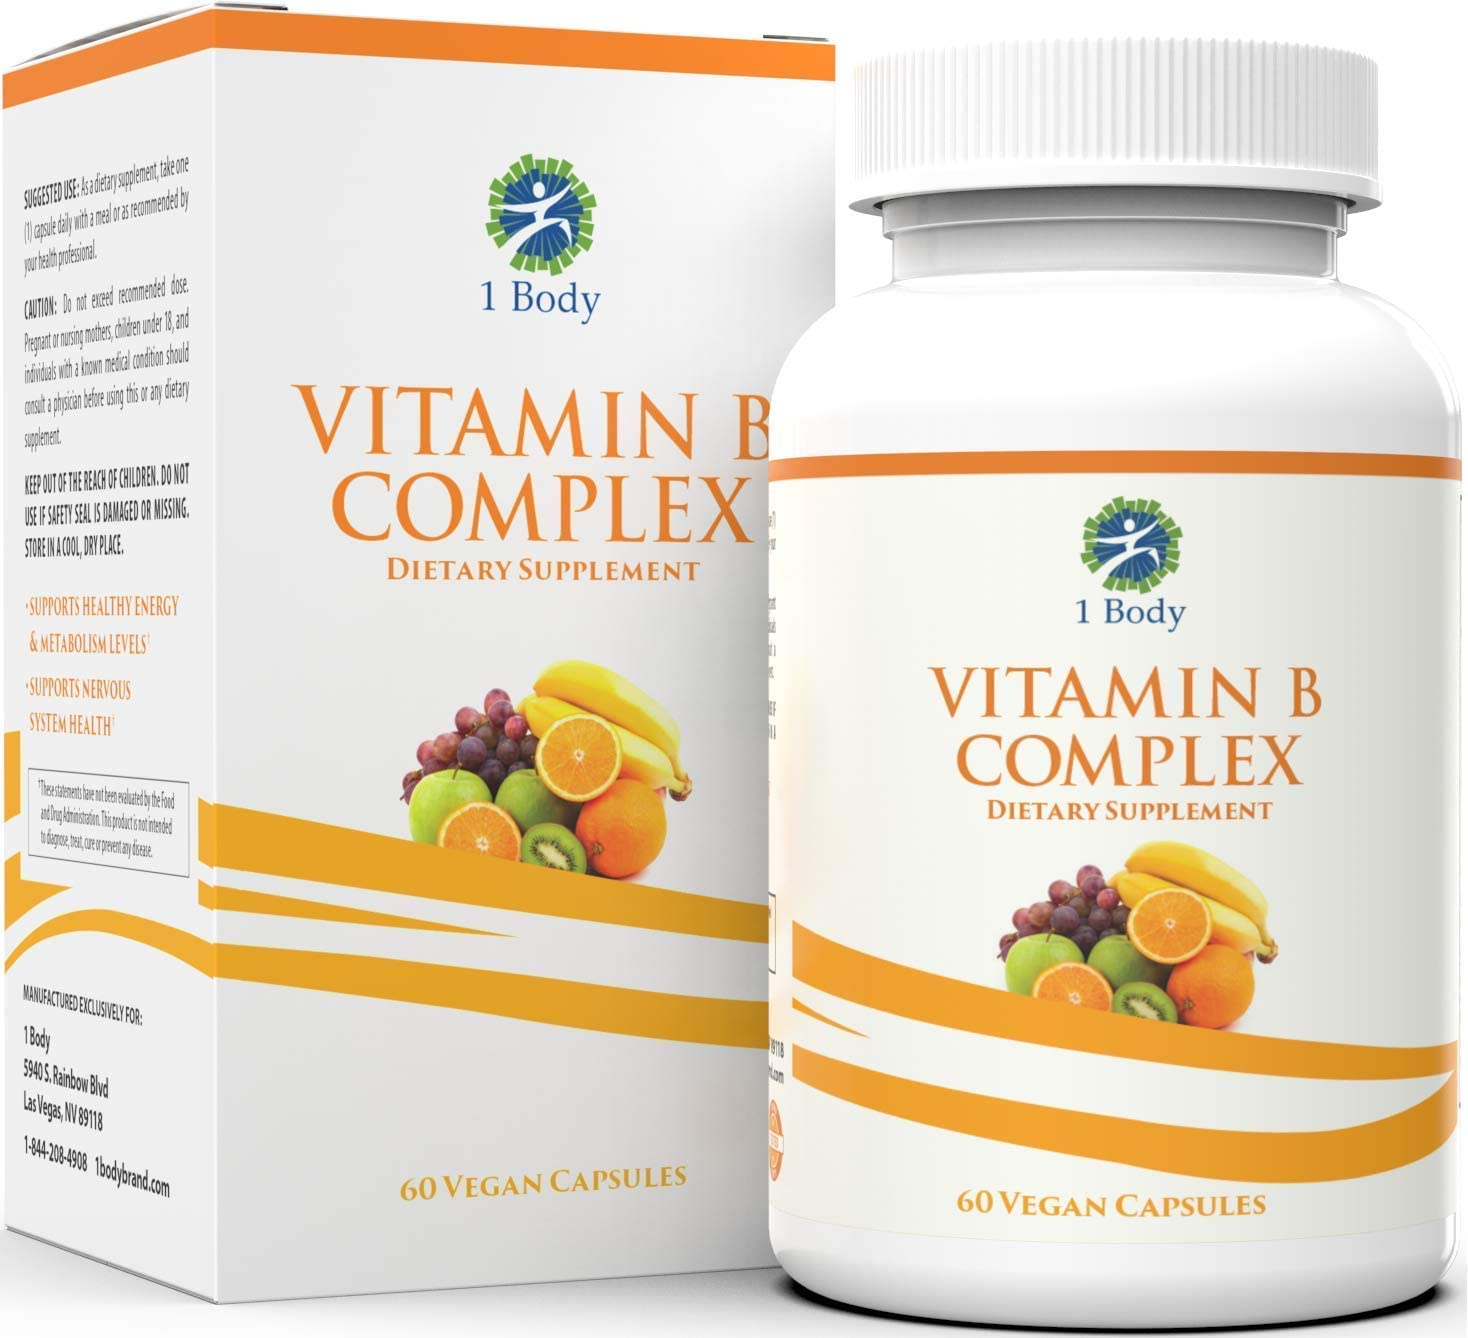 Vitamin B Complex – 5-MTHF Folate with B1, B2, B5, B6, Methyl B12, Niacin, Biotin – Wide Range of Benefits for Stress, Heart Health, Nervous System Support, Healthy Brain Function